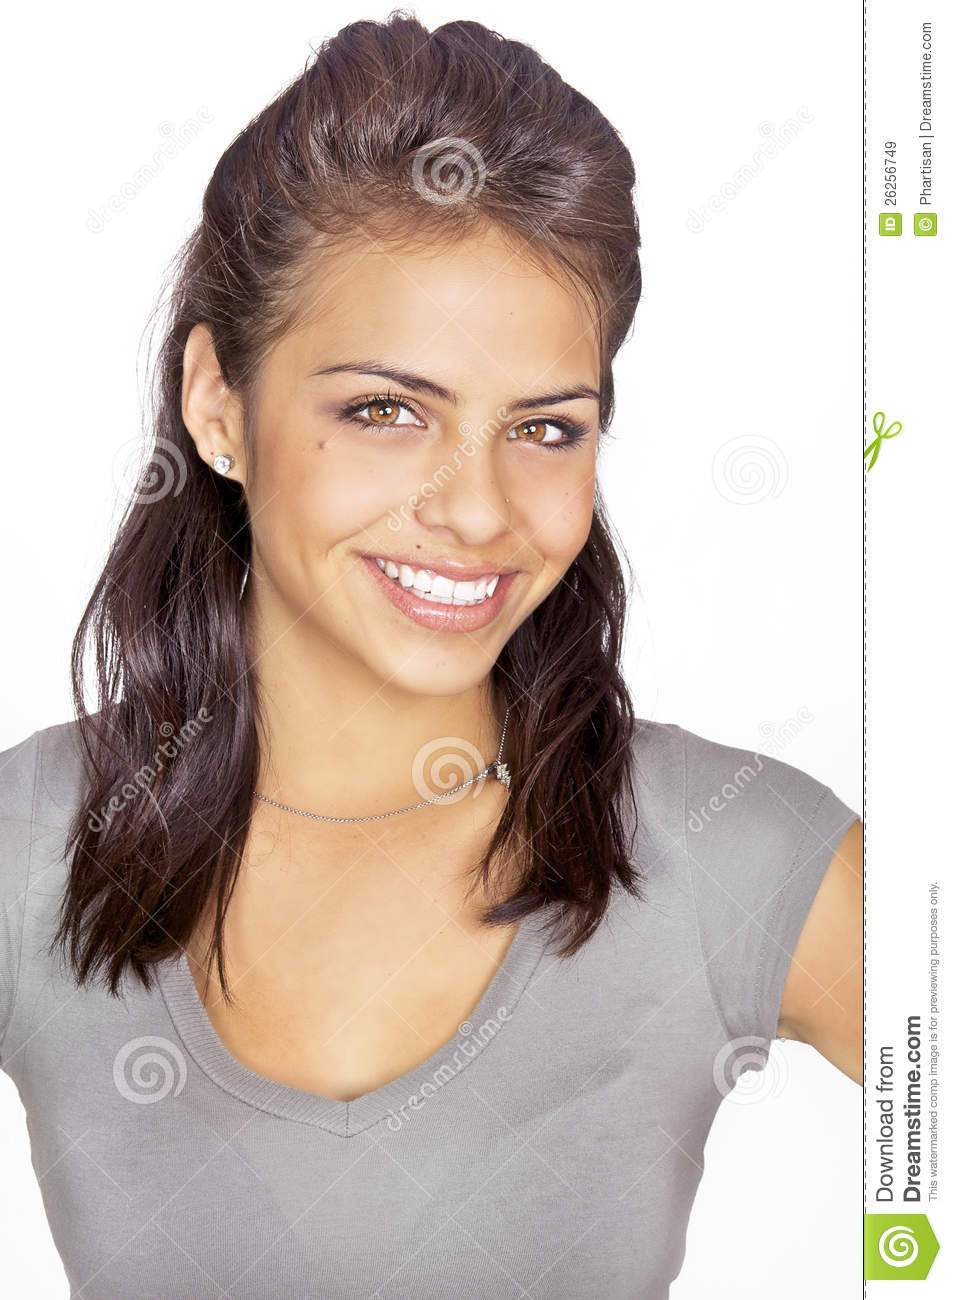 Friendly smiling young woman